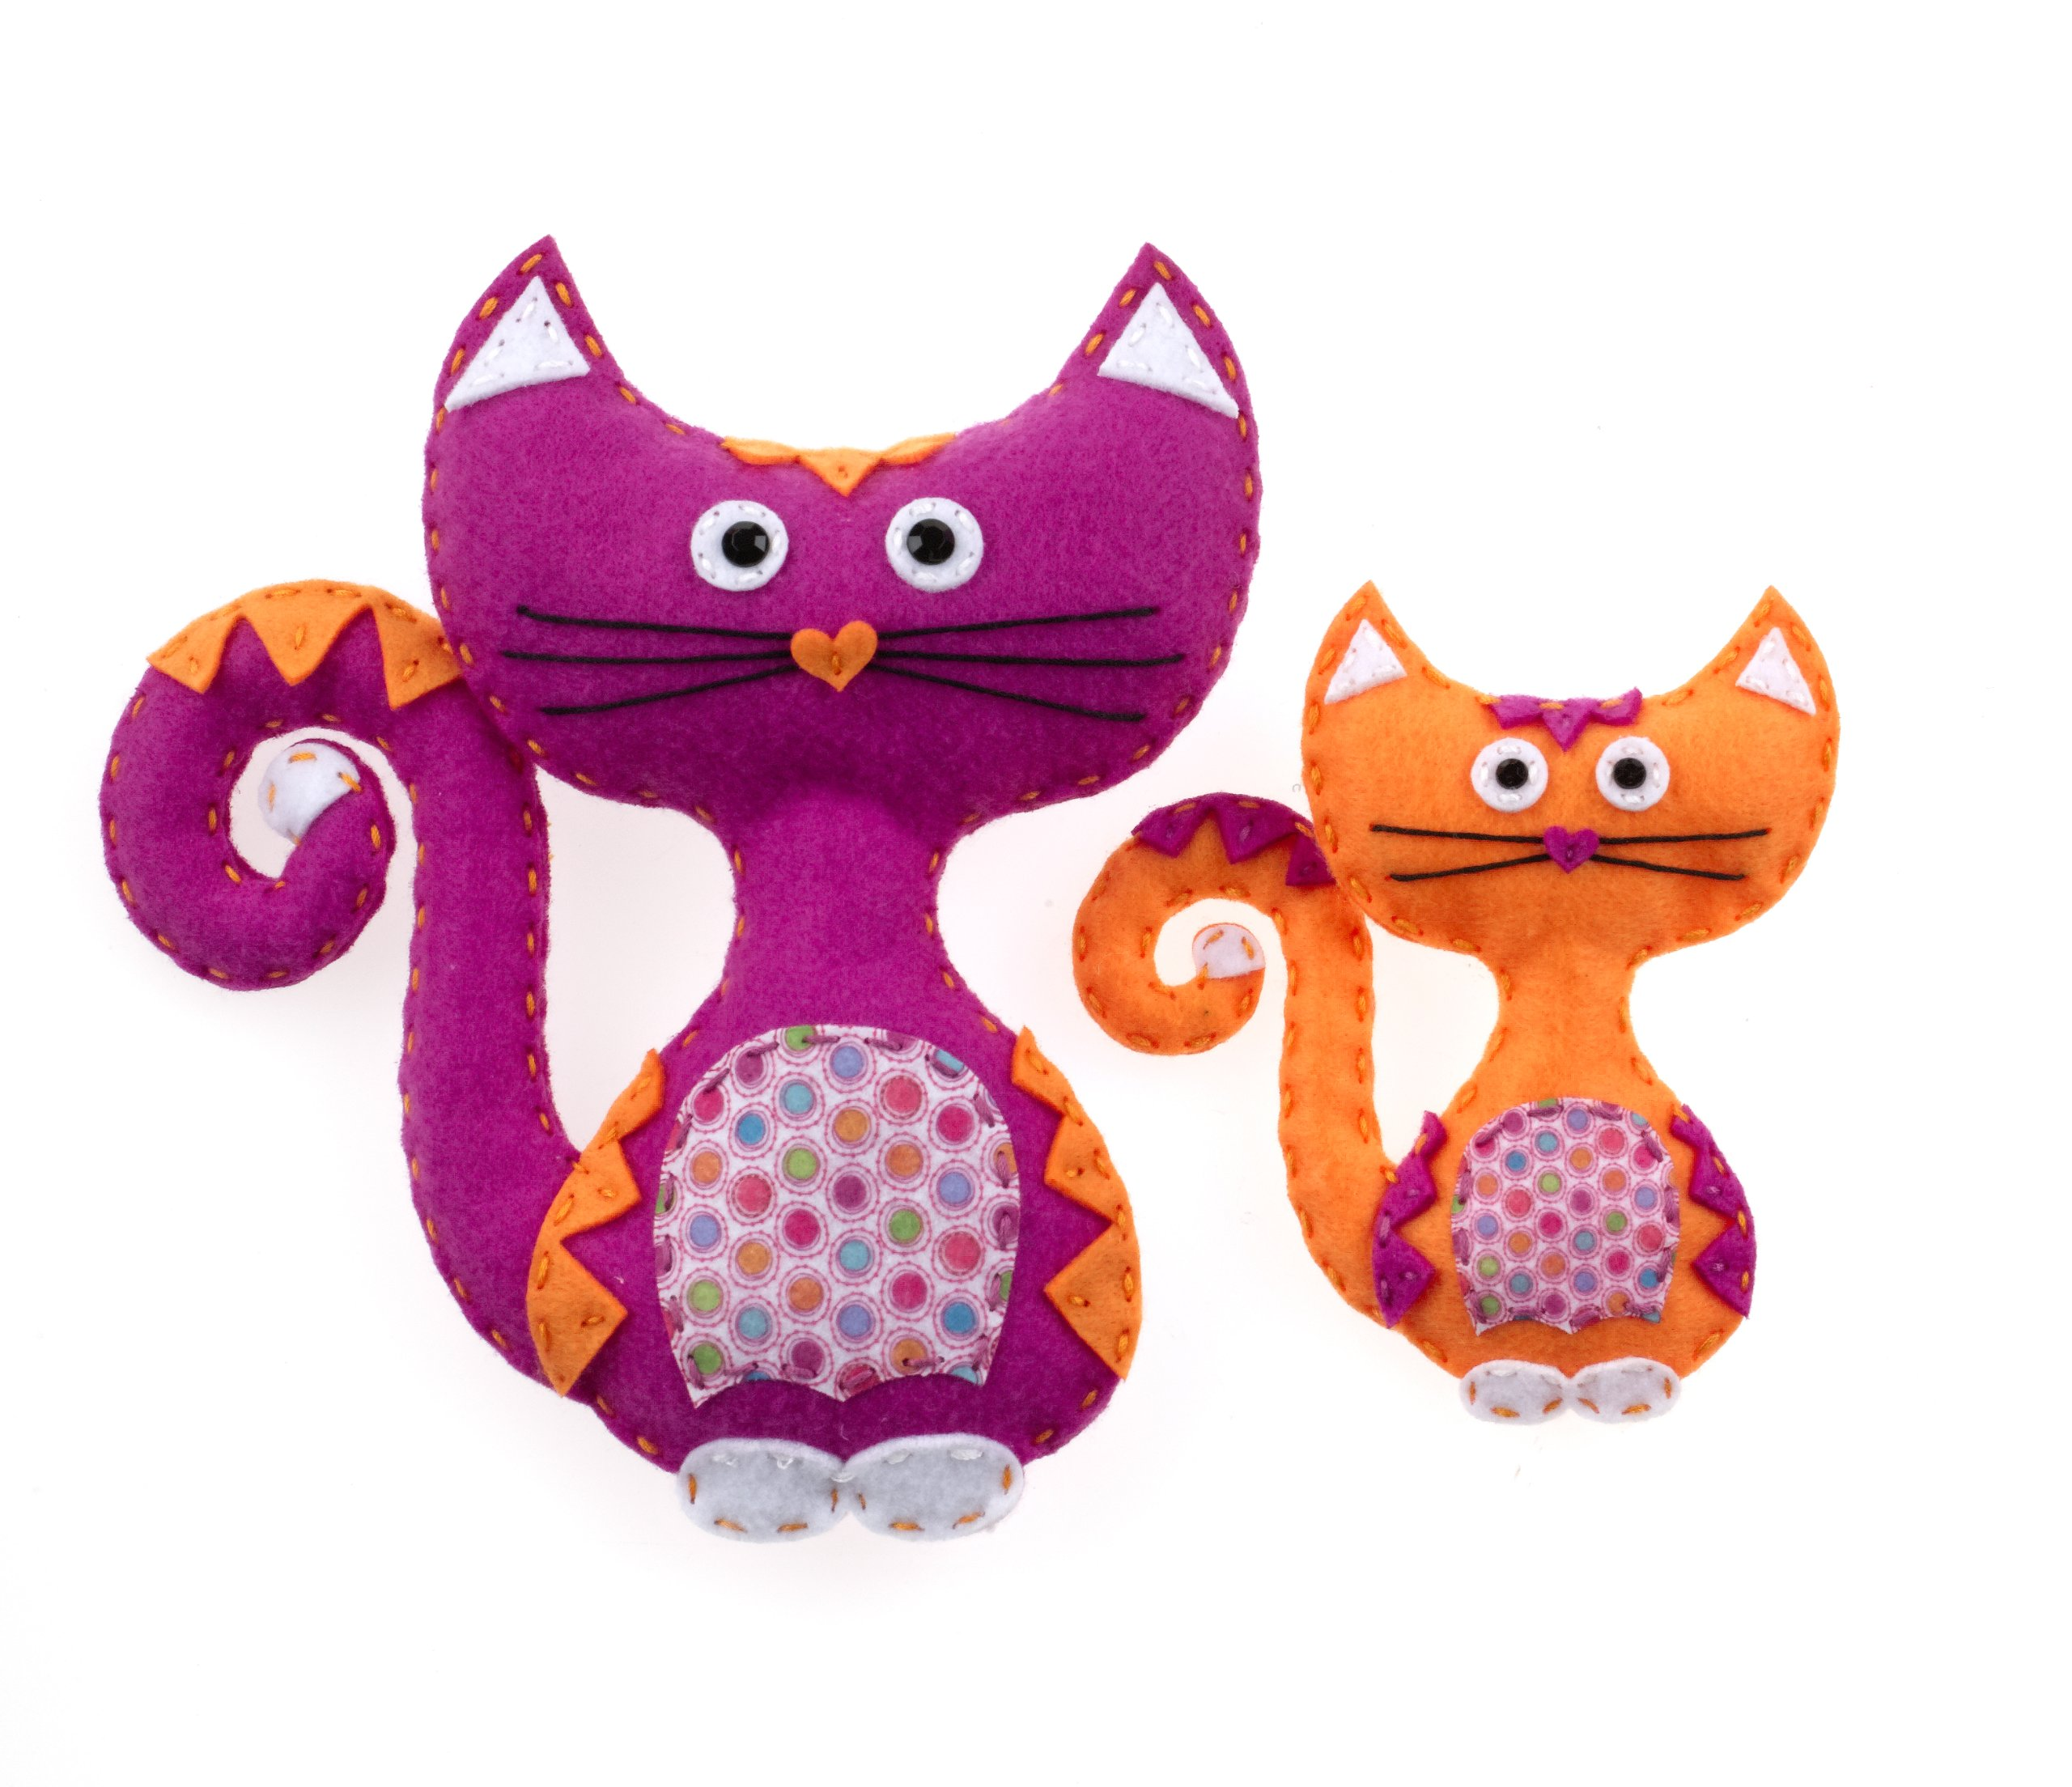 American Girl Crafts 30-677395 Cats Sew and Stuff Kit